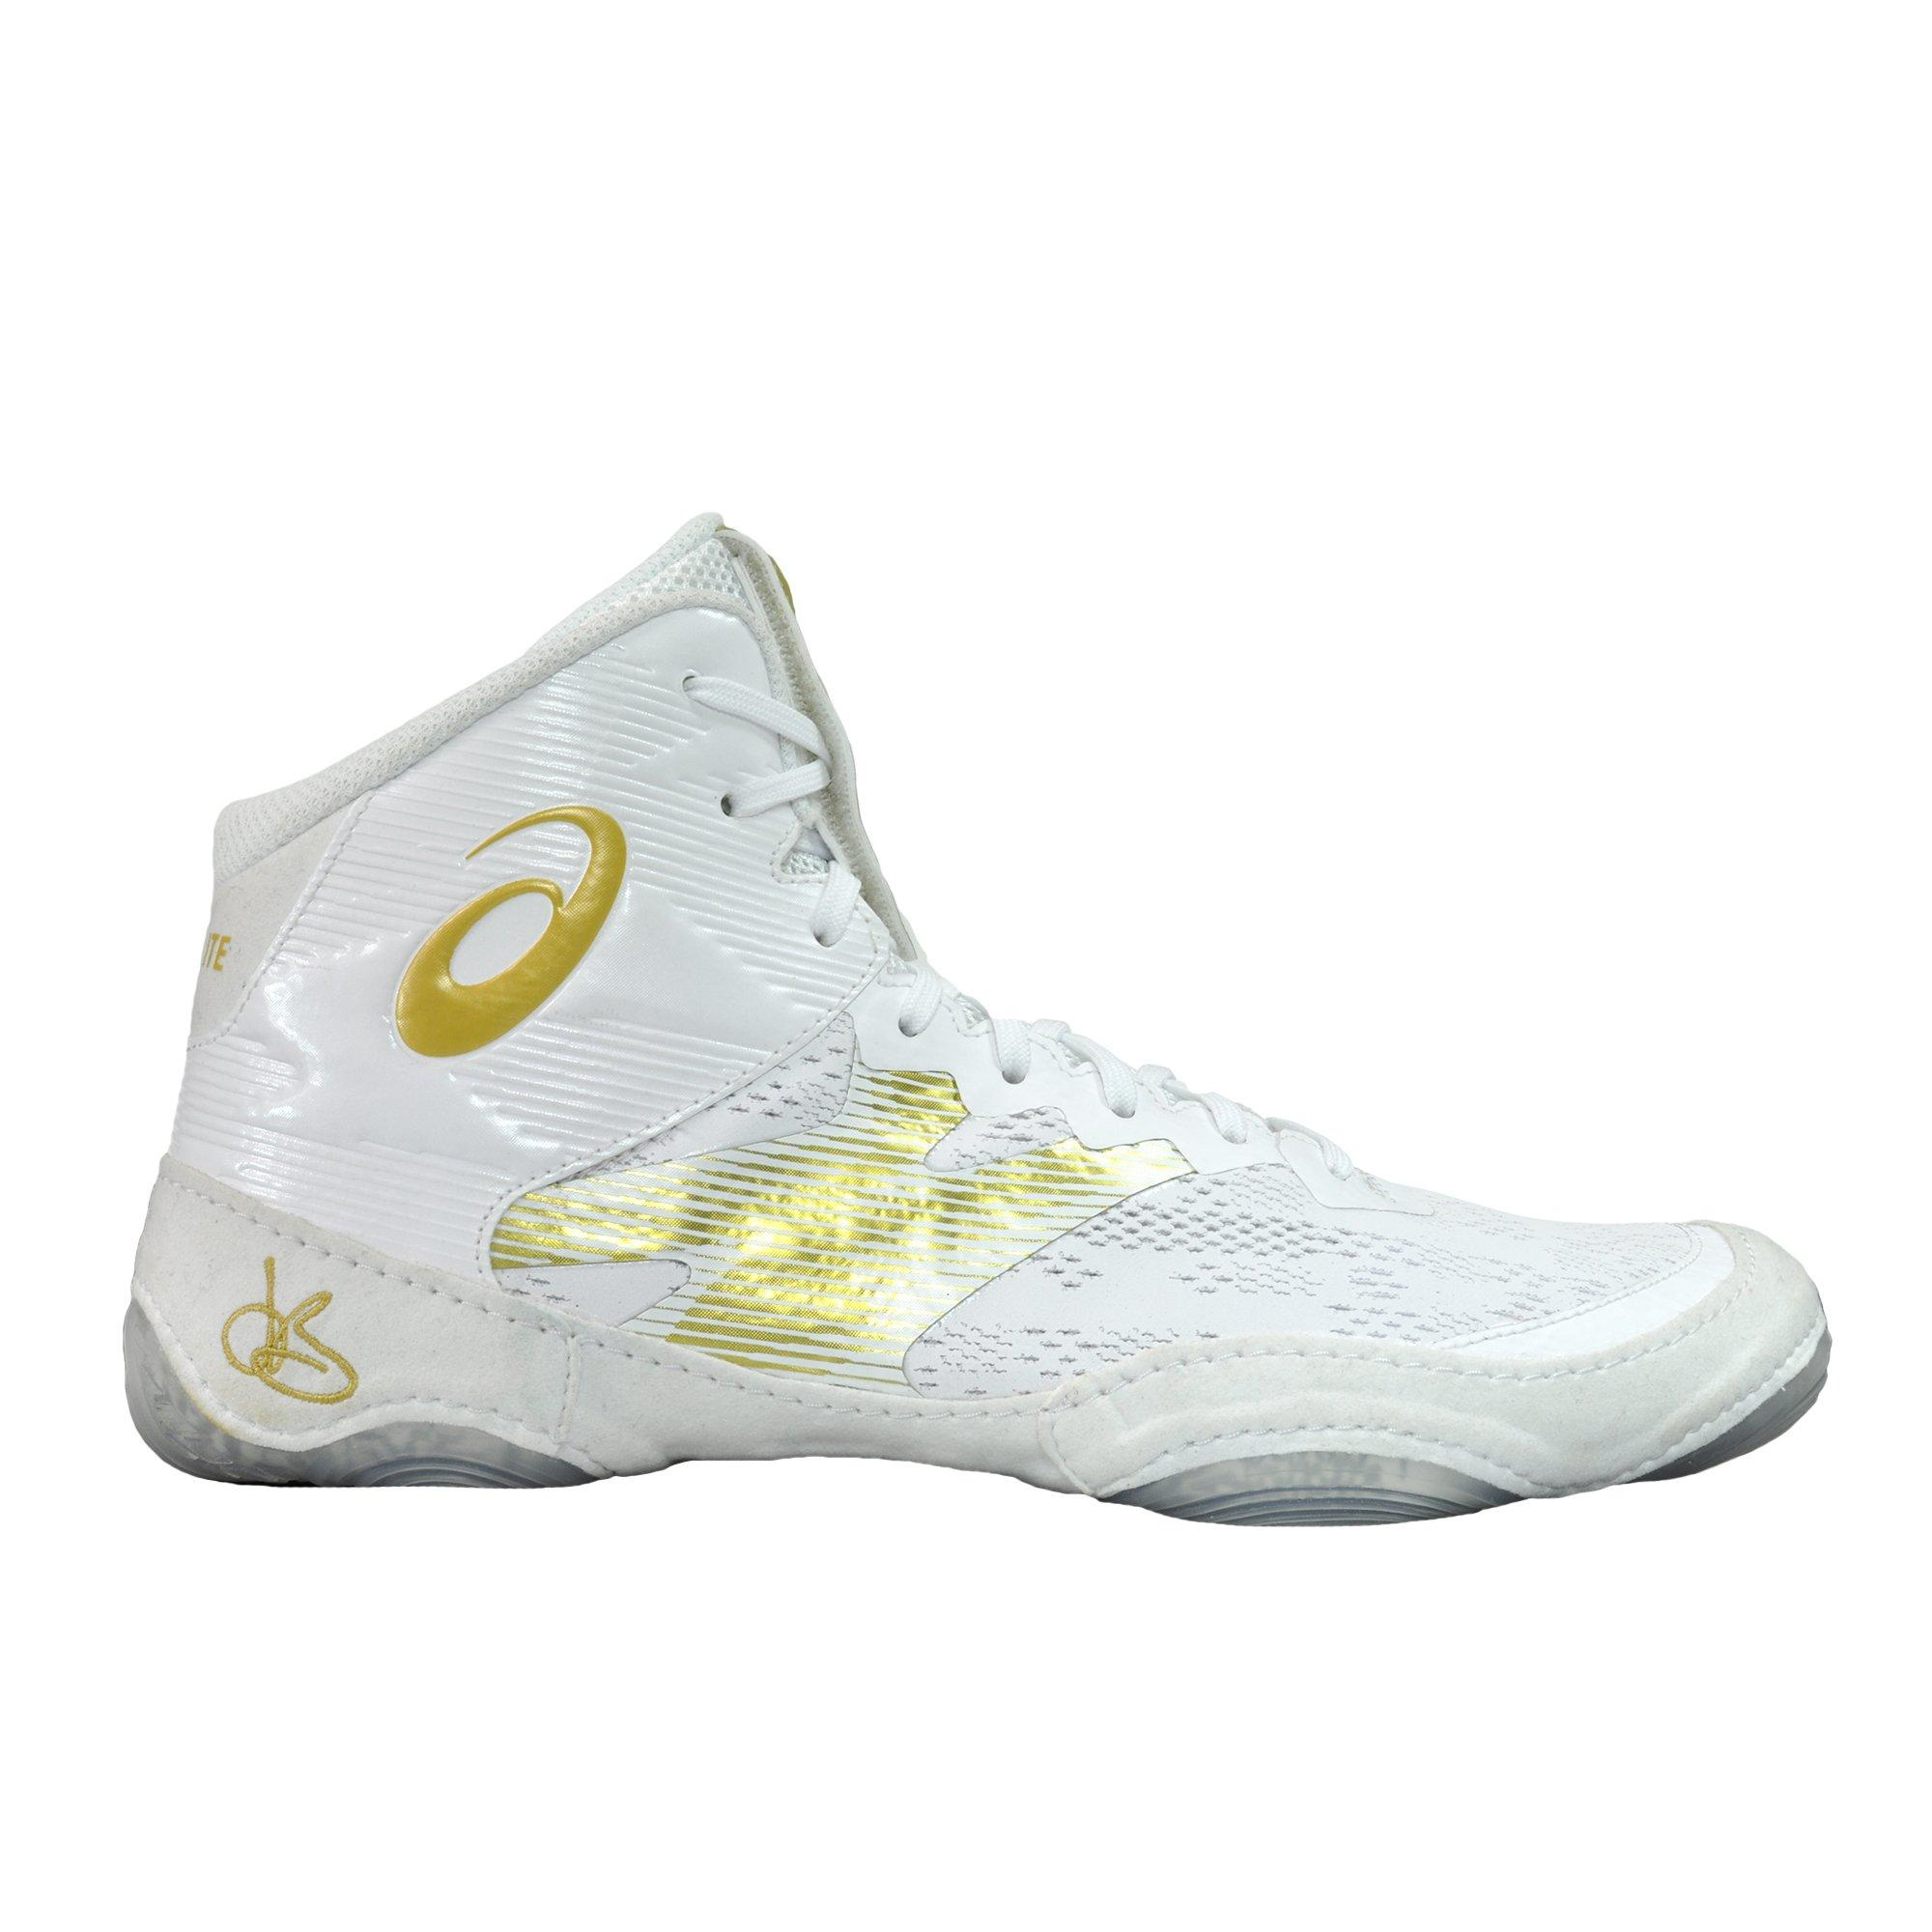 white and gold asics wrestling shoes